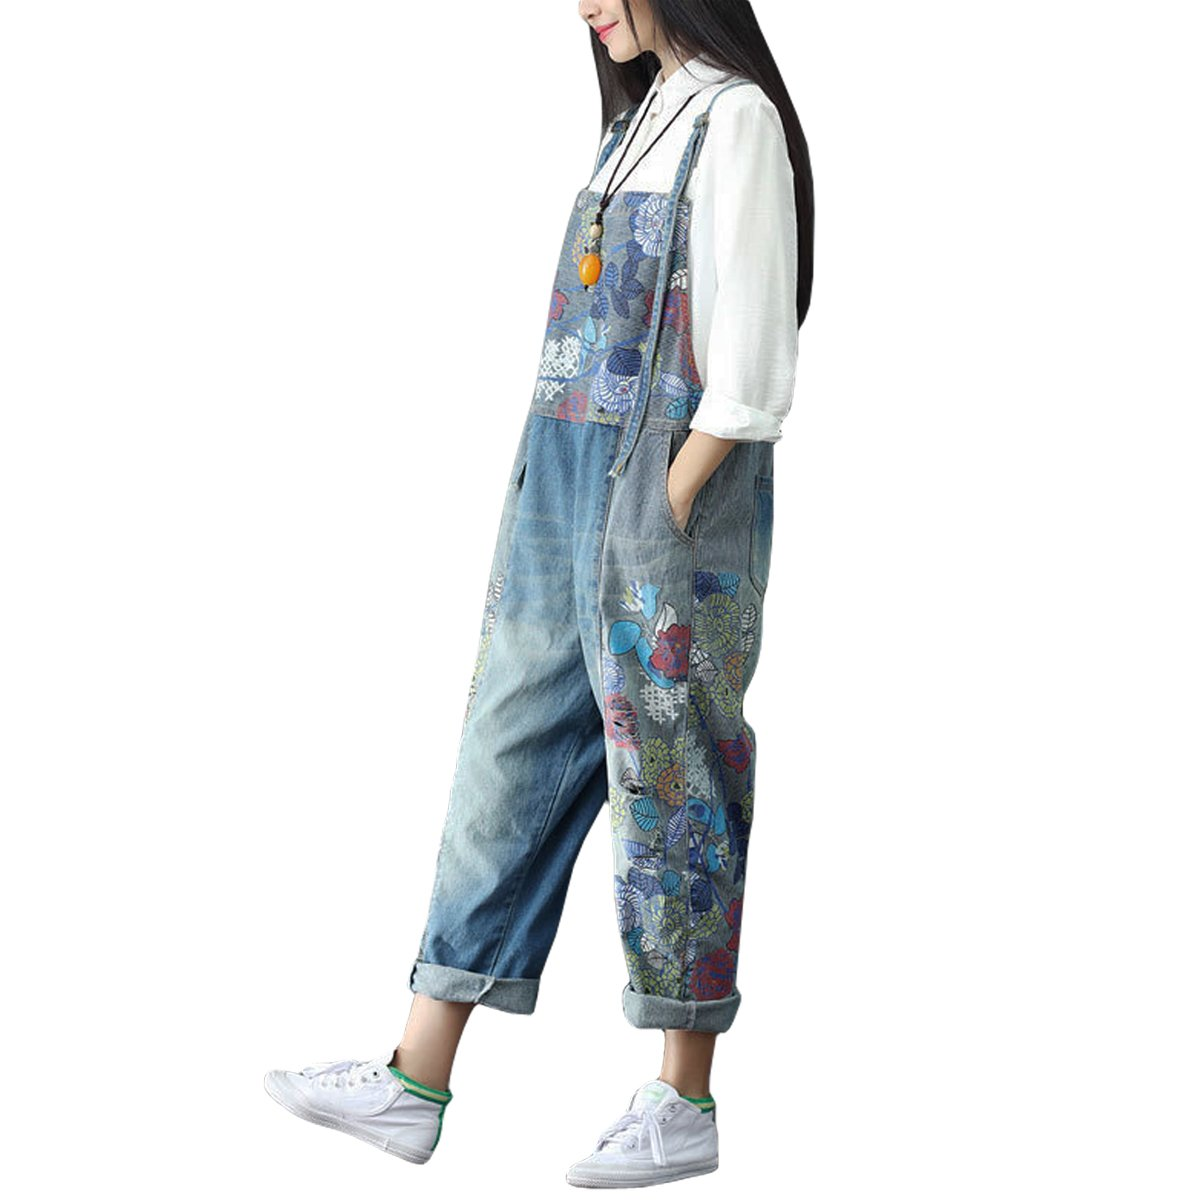 31d5bf0ae09 Sidiou Group Women s Casual Printed Baggy Trousers Wide Leg Dungarees  Cotton Romper Jumpsuit Playsuit (One Size